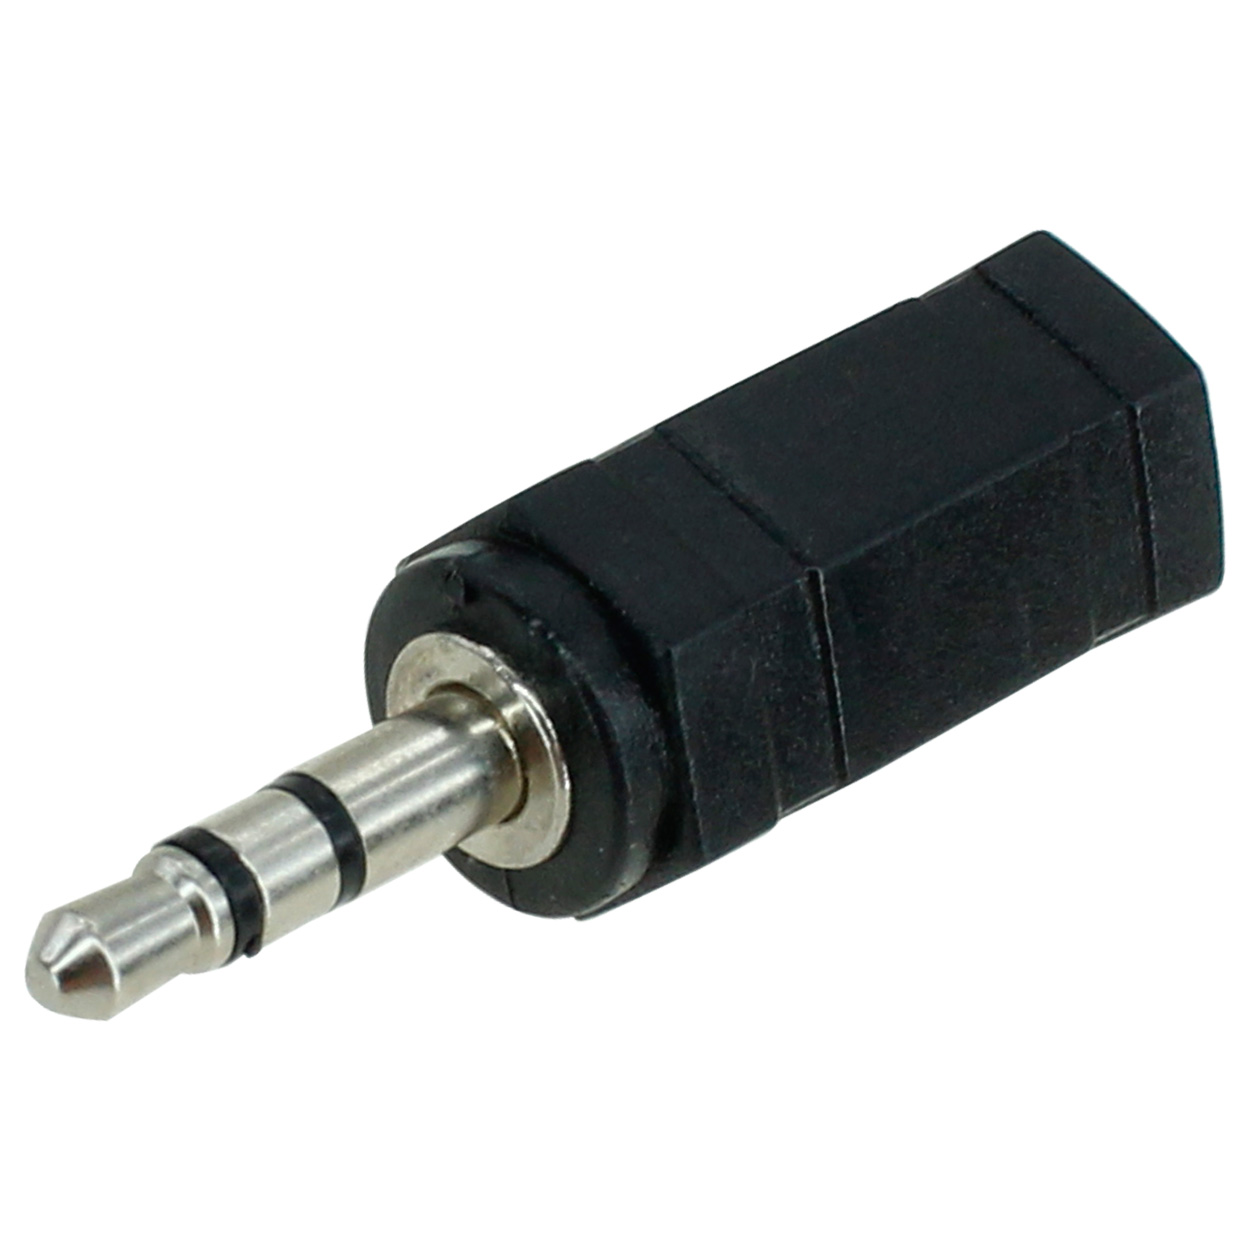 3.5mm Male to 2.5mm Female Stereo Audio Adapter